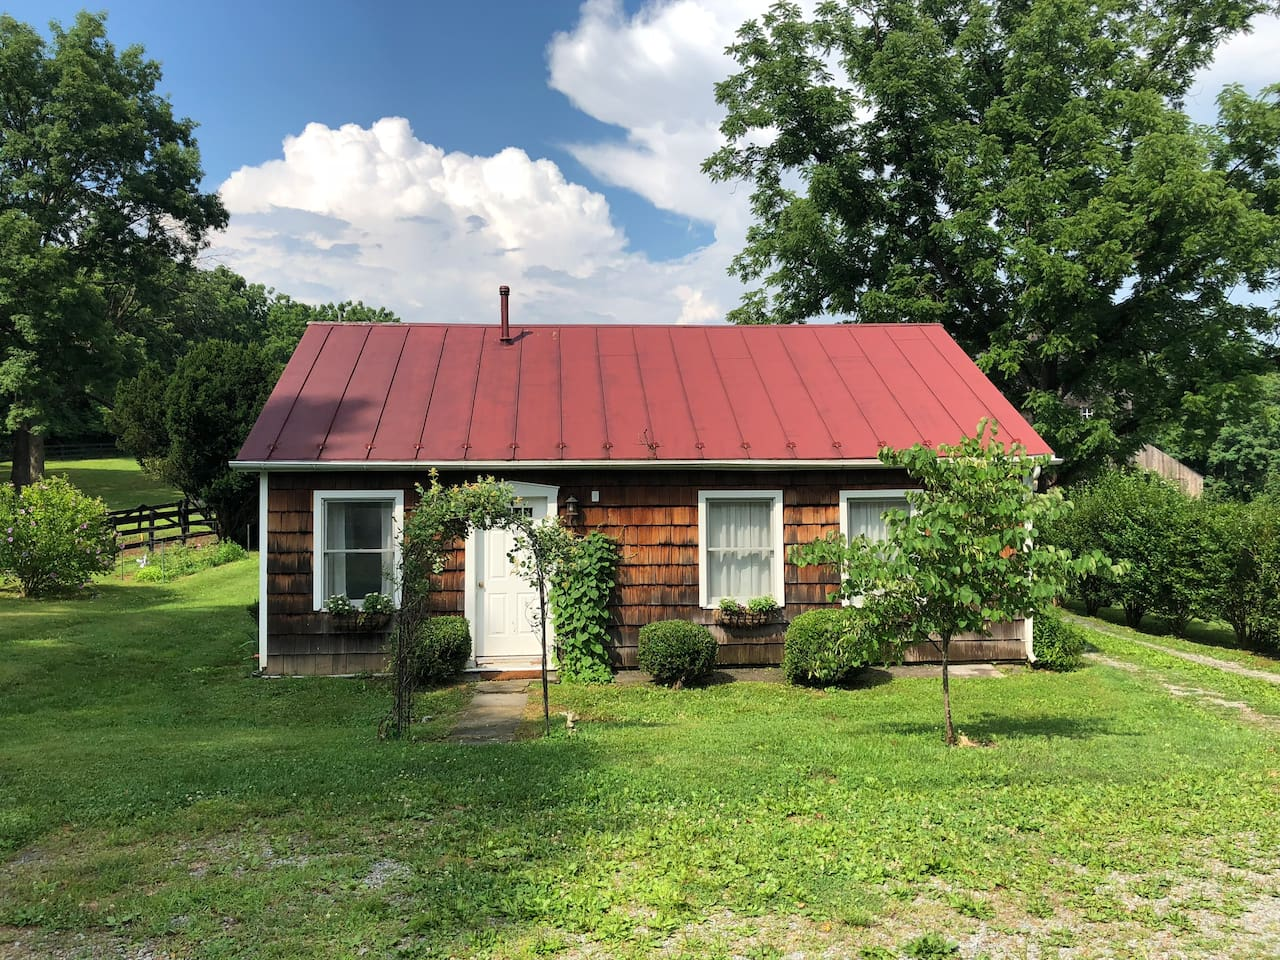 Cottage on an 18 acre horse farm in Middleburg. Very close to the town but in the countryside on the banks of Goose Creek.